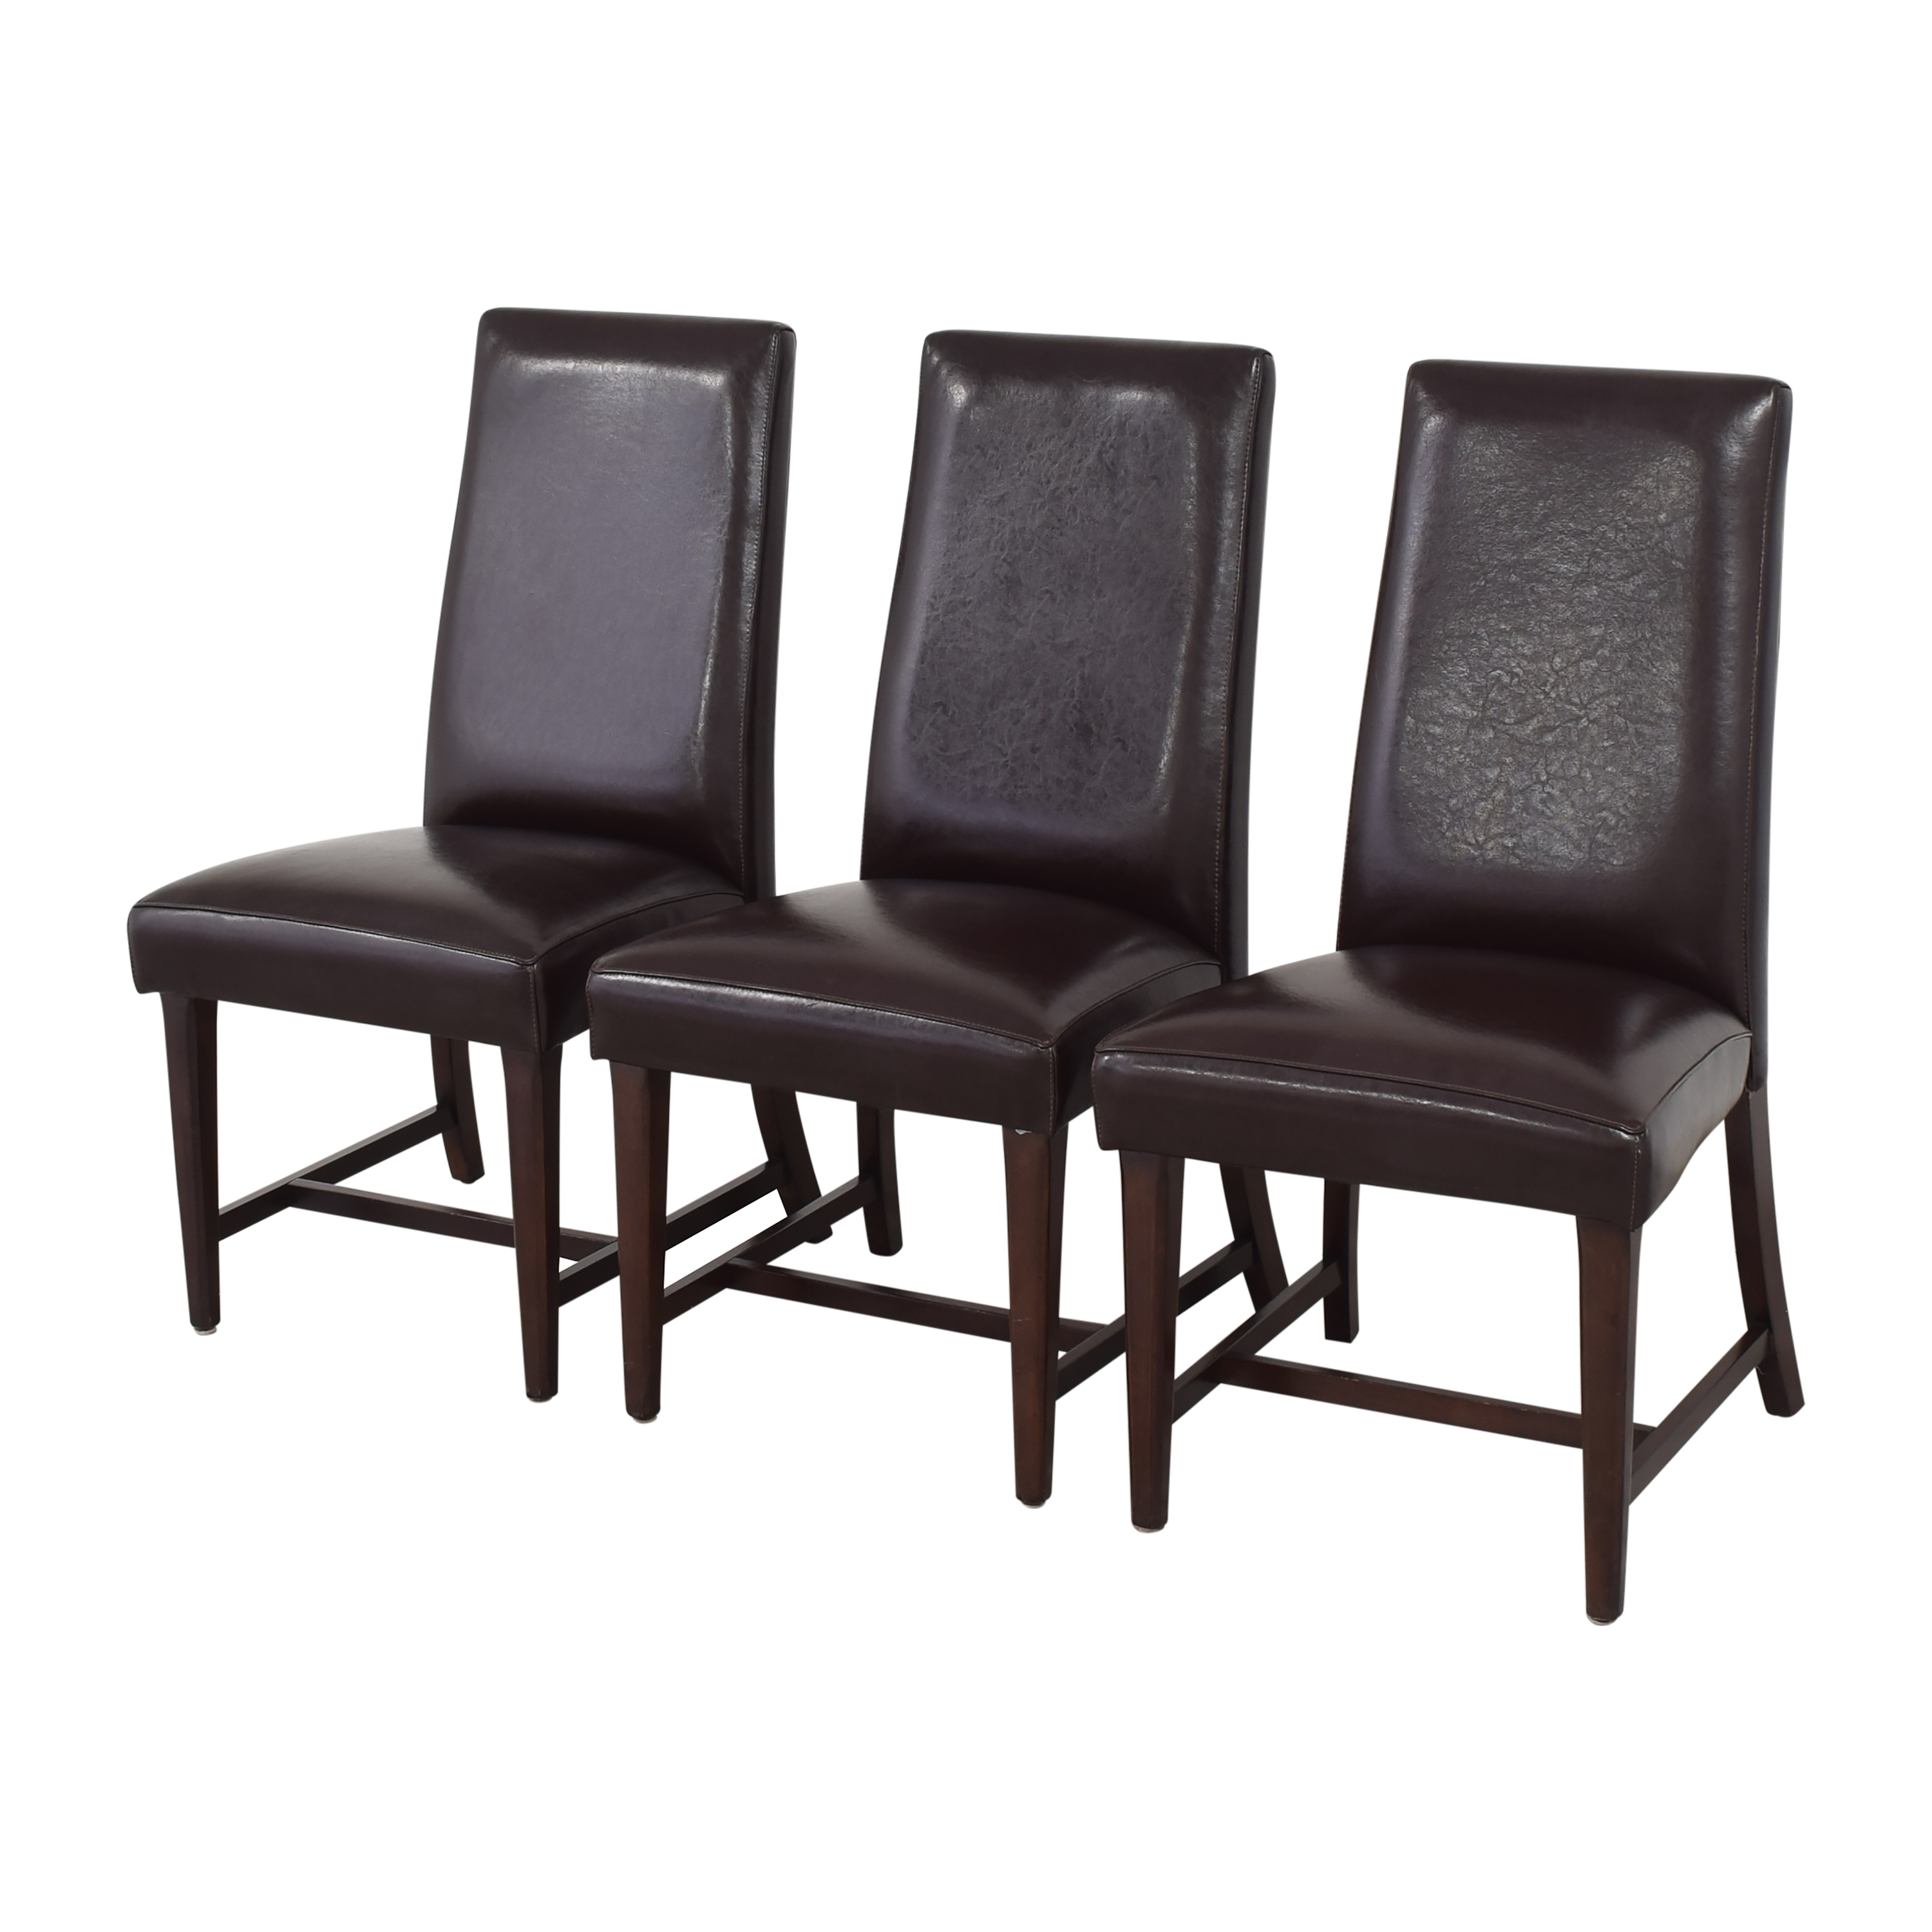 Shermag High Back Dining Chairs / Chairs